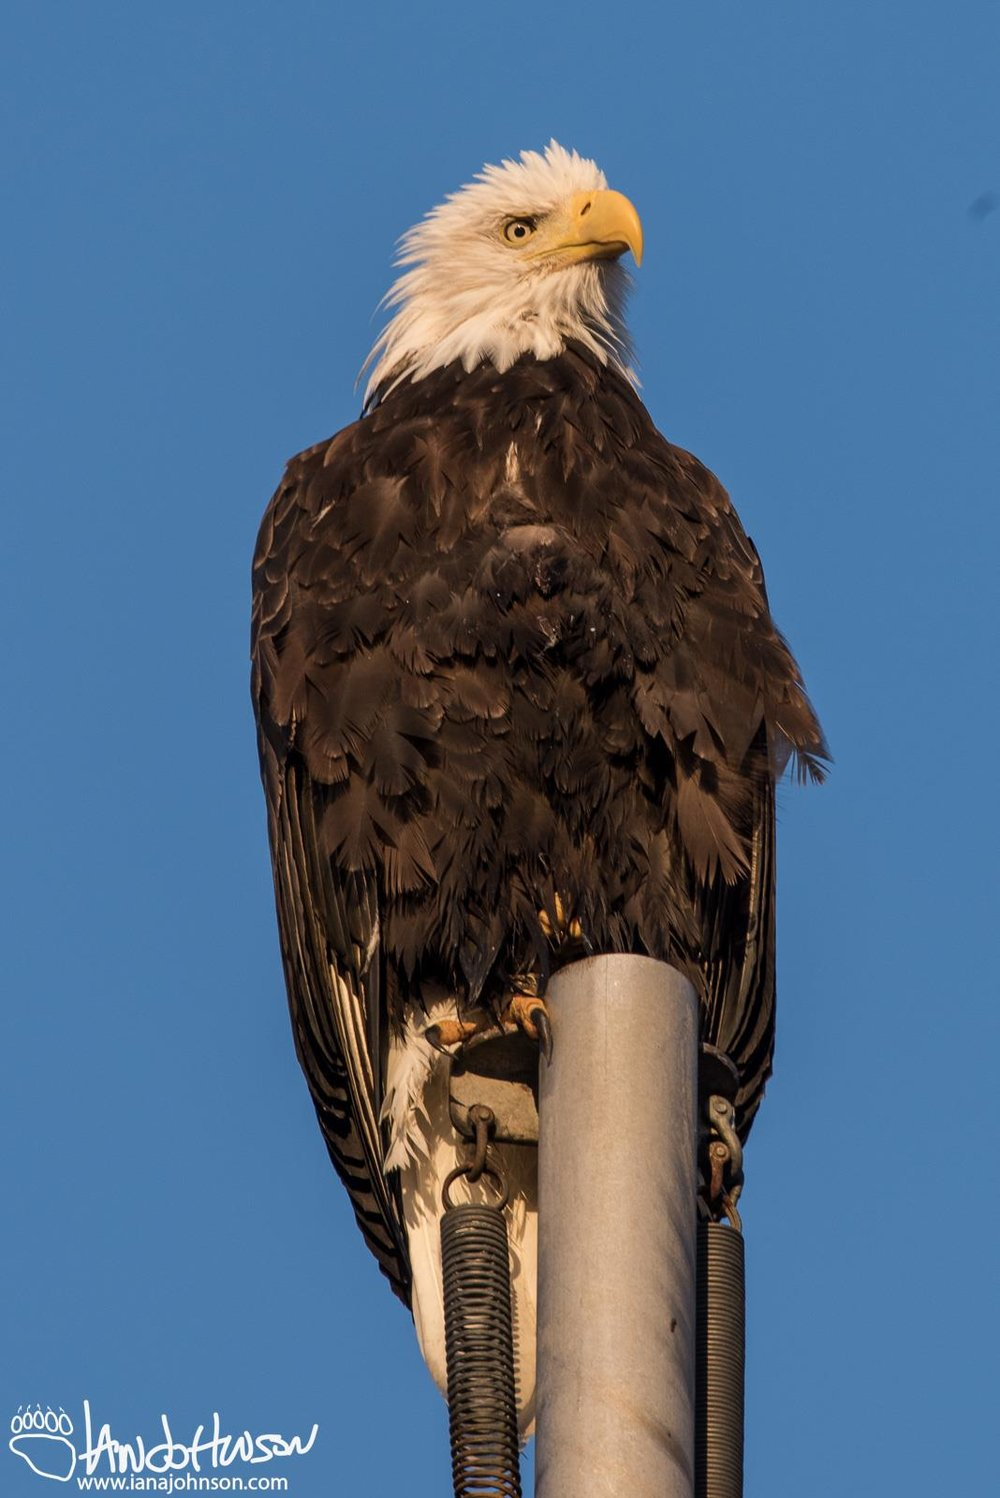 BALD EAGLES ARE ALL-YEAR RESIDENTS, BUT OTHERS SUCH AS SAND-HILL CRANES AND PUFFINS ARE MIGRANTS. IMAGE: IAN A. JOHNSON